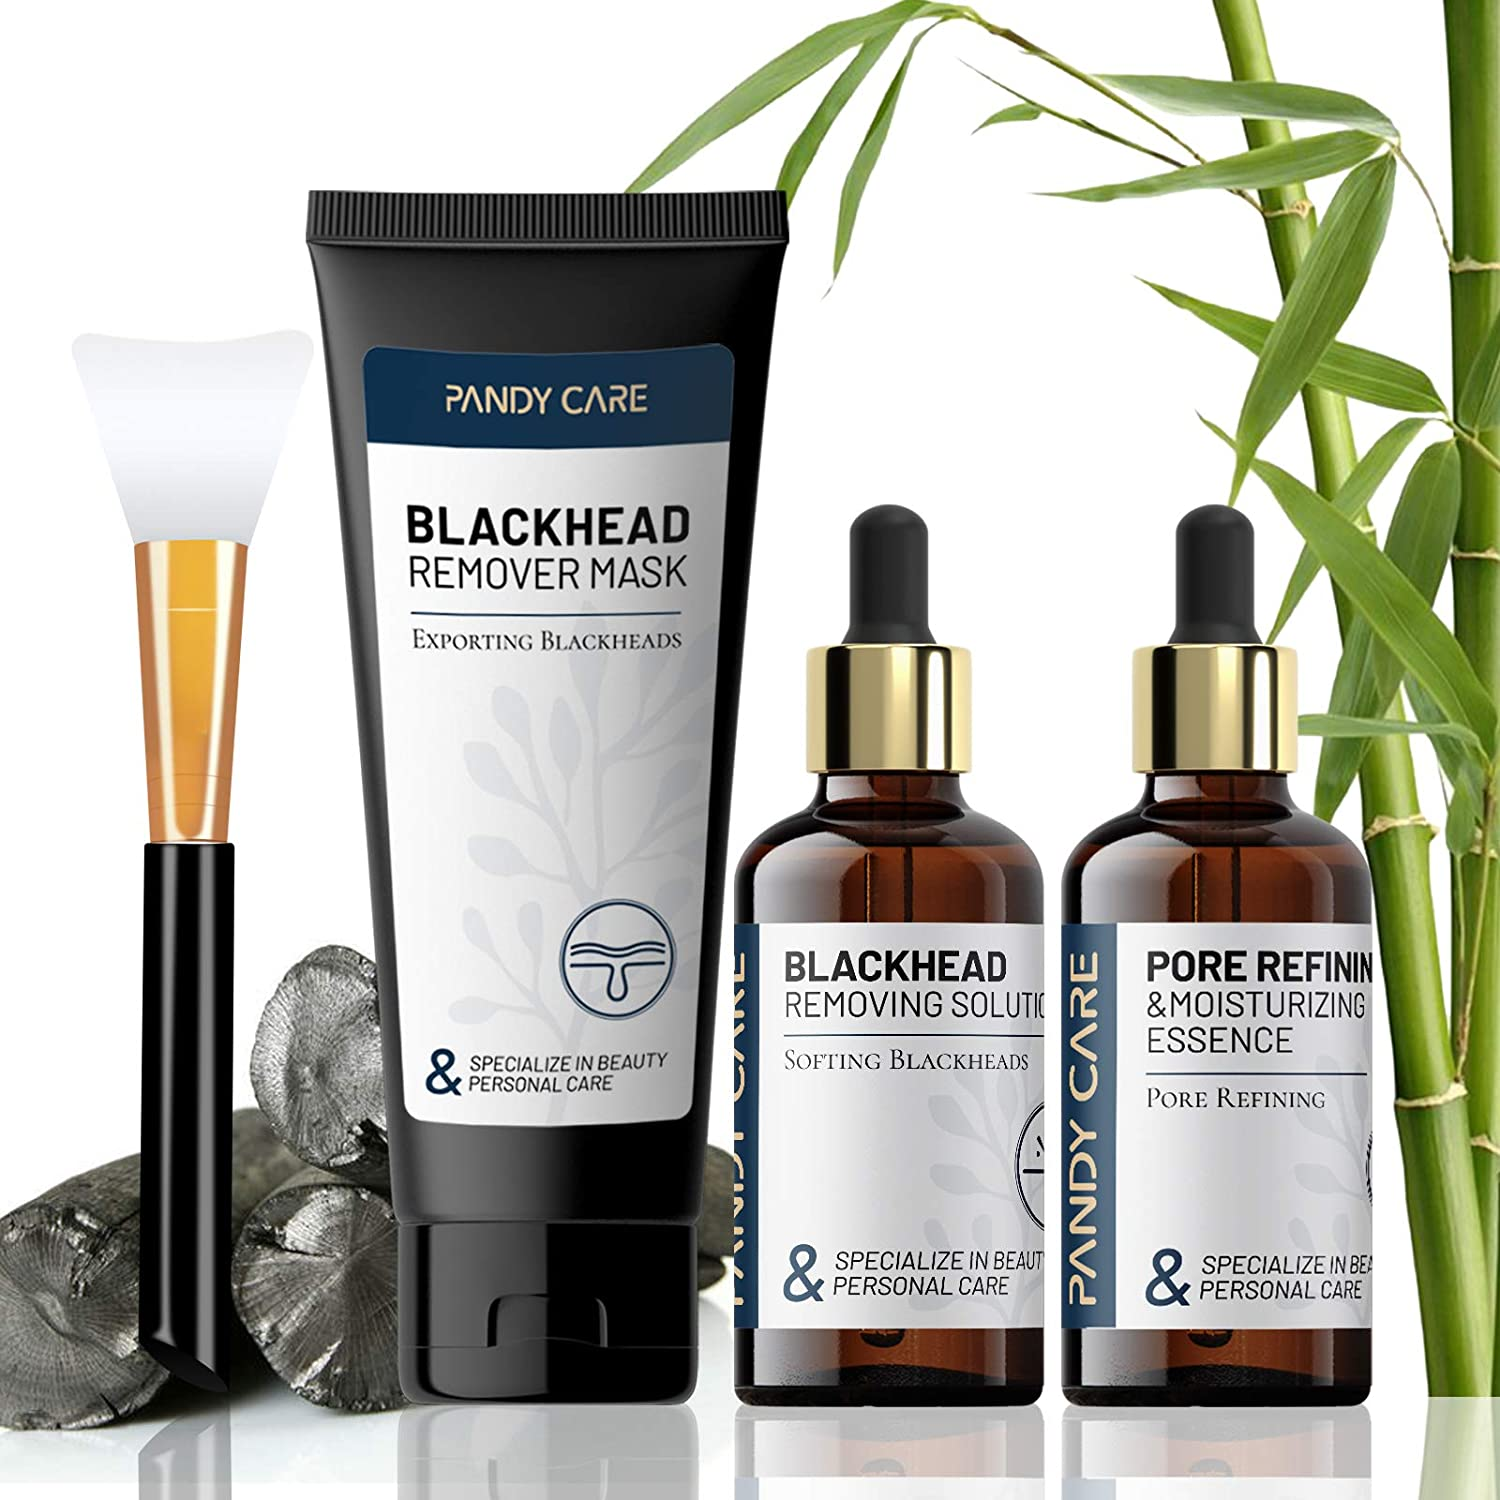 Blackhead Remover Mask, PandyCare 4-in-1 Charcoal Peel off Face Mask with Hyaluronic Acid Exporting Liquid, Mega-Mushroom Pore Refining Essence & Brush - Deep Cleansing, Pore Refining & Moisturizing